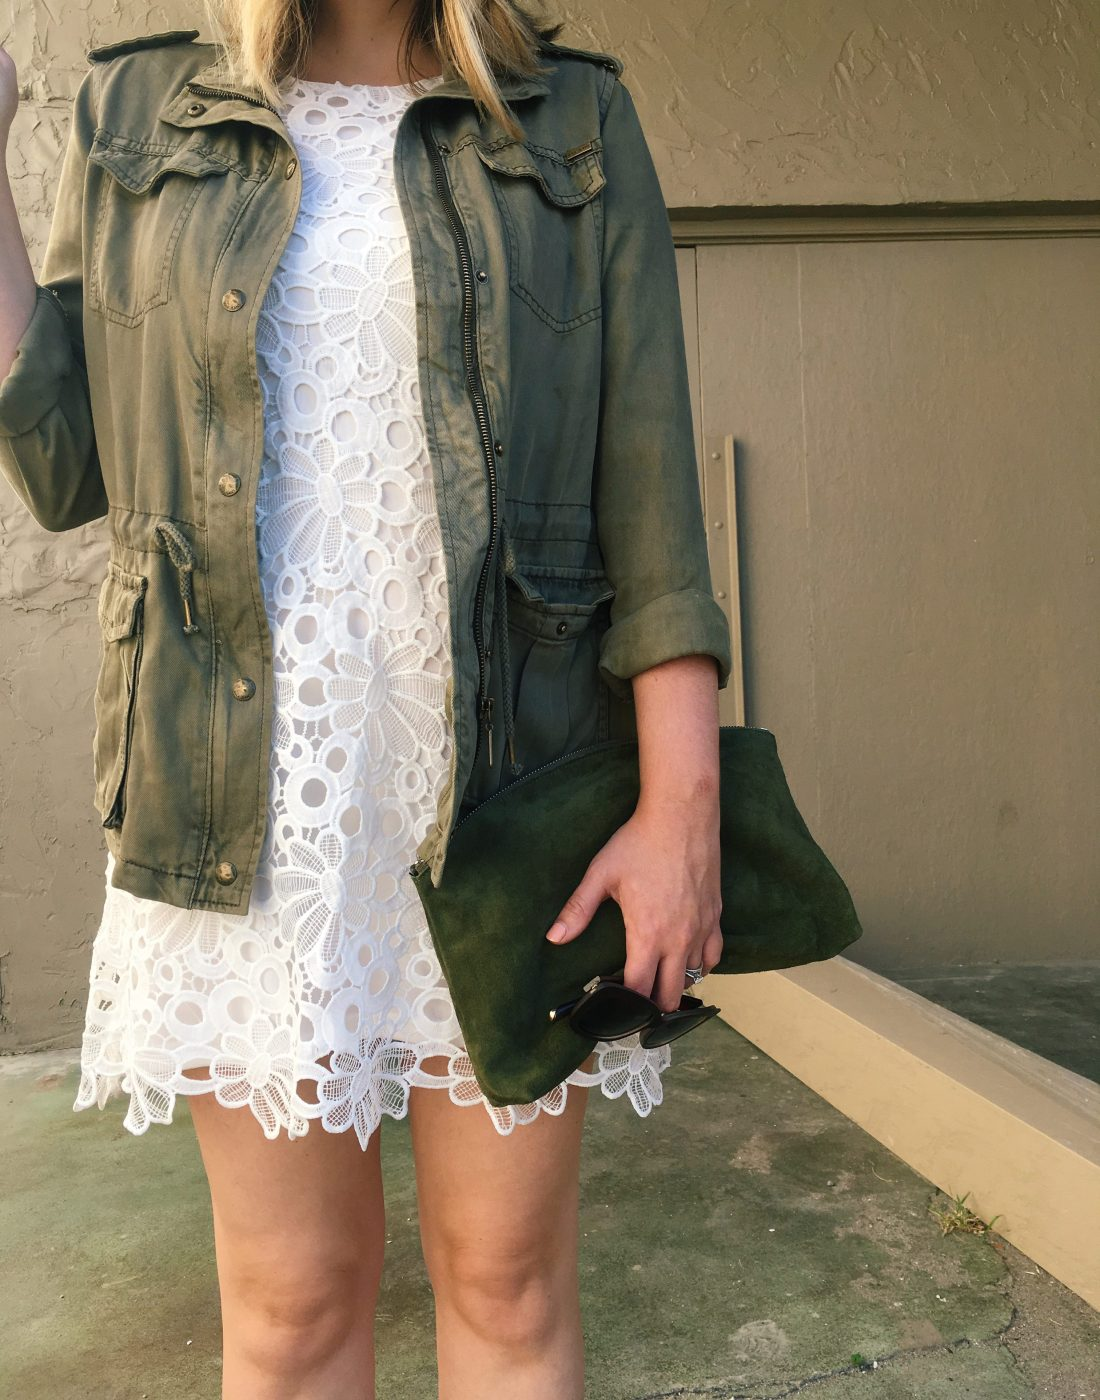 how to wear an anorak jacket, anorak jacket over a dress, style blog, womens fashion, outfit ideas, OOTD